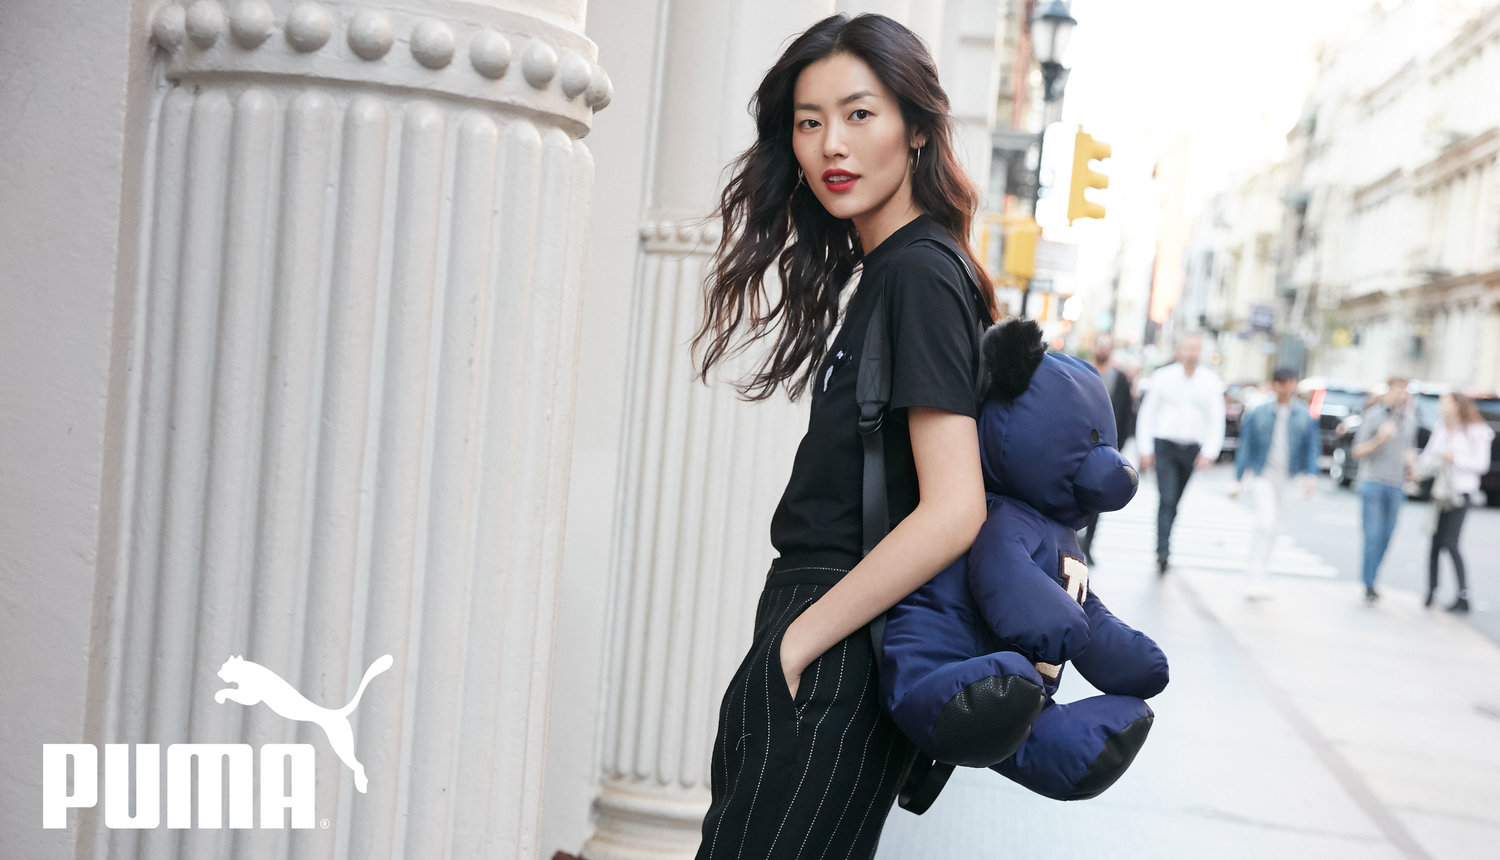 LIU WEN - PUMA CAMPAIGN - PRODUCED BY TIMMY LIANG